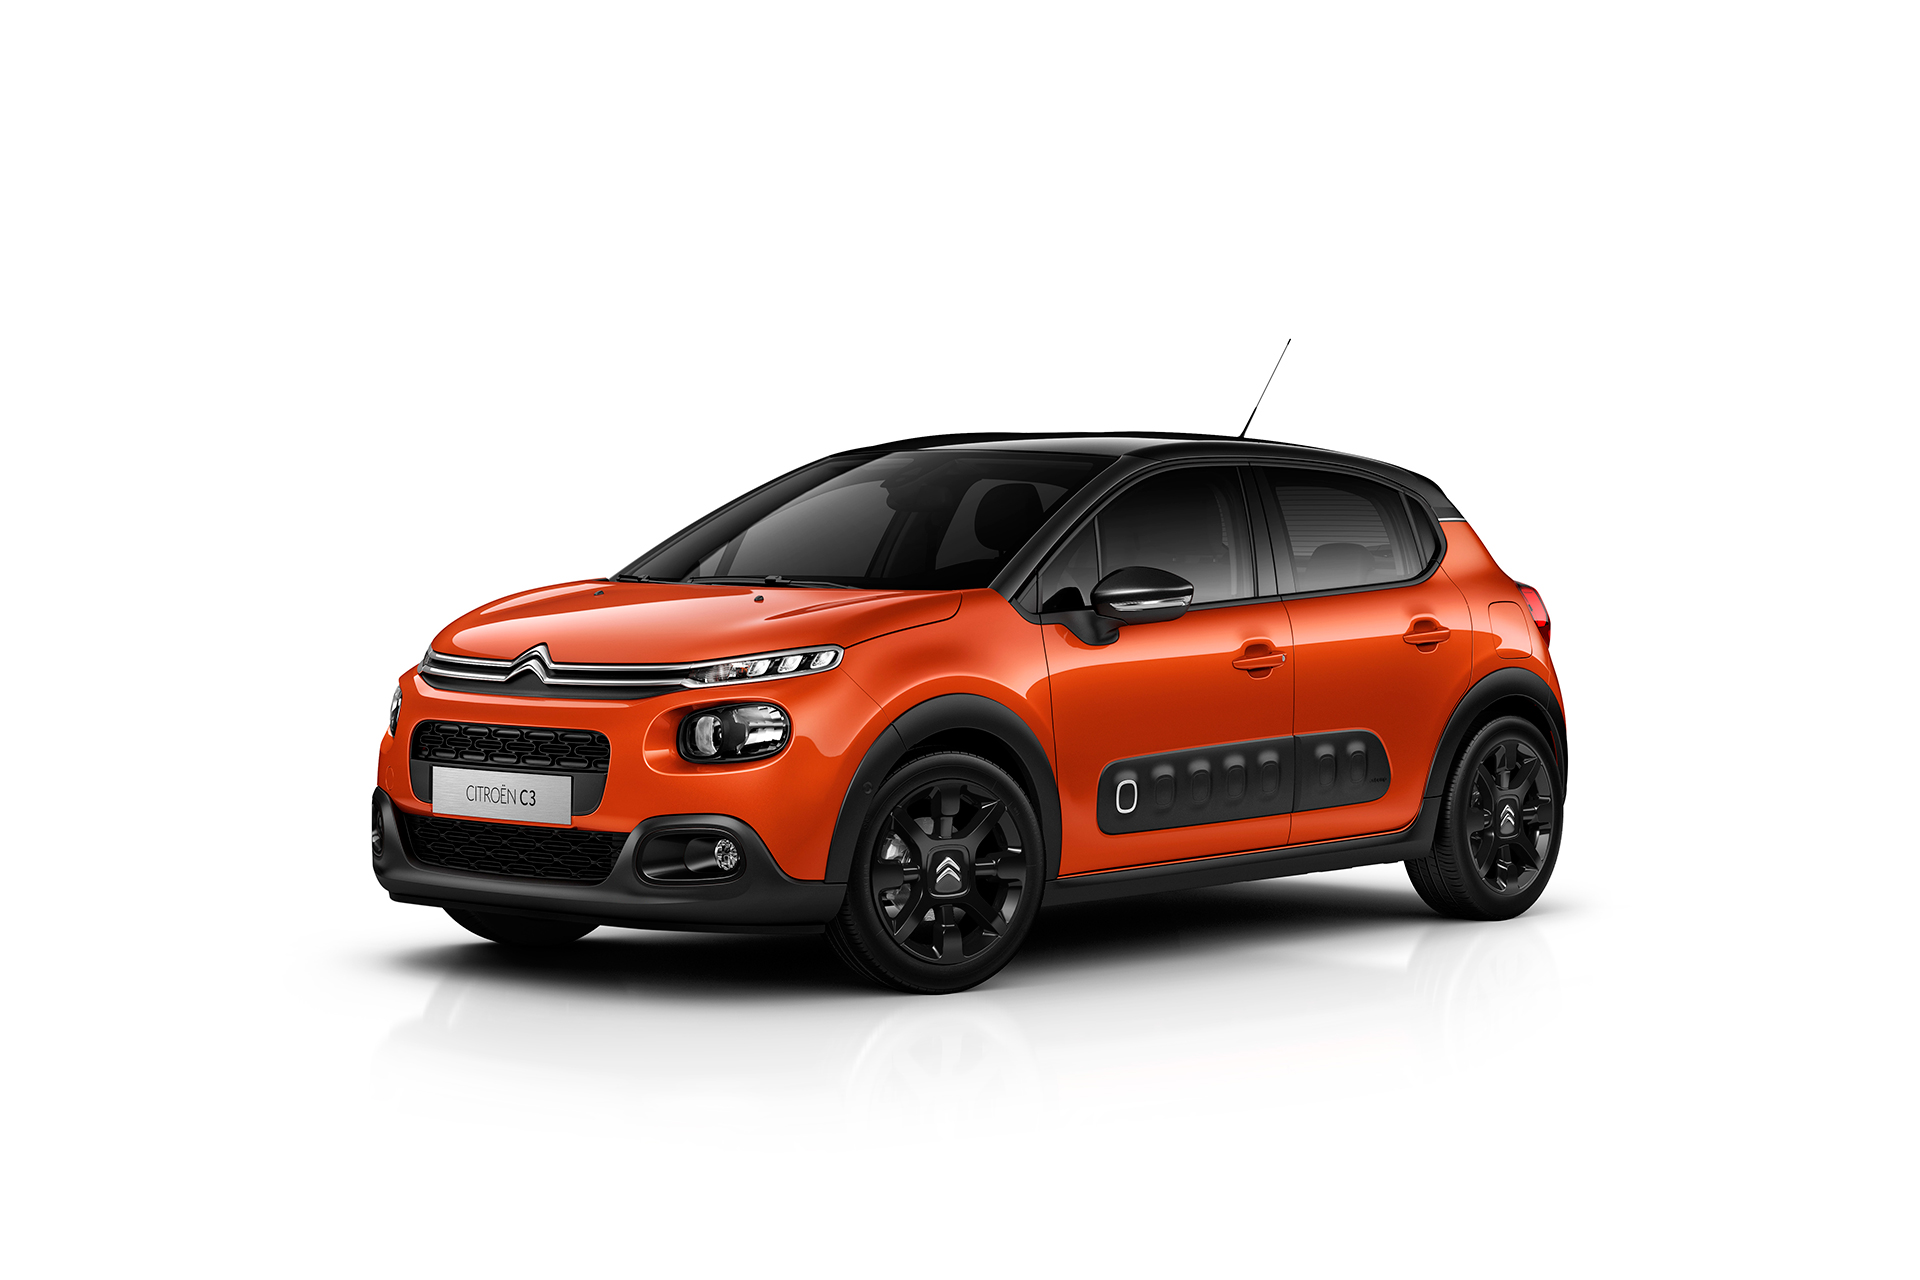 Citroen C3 2016 - front side-face / profil avant - Noir Onyx - teintes Orange Power